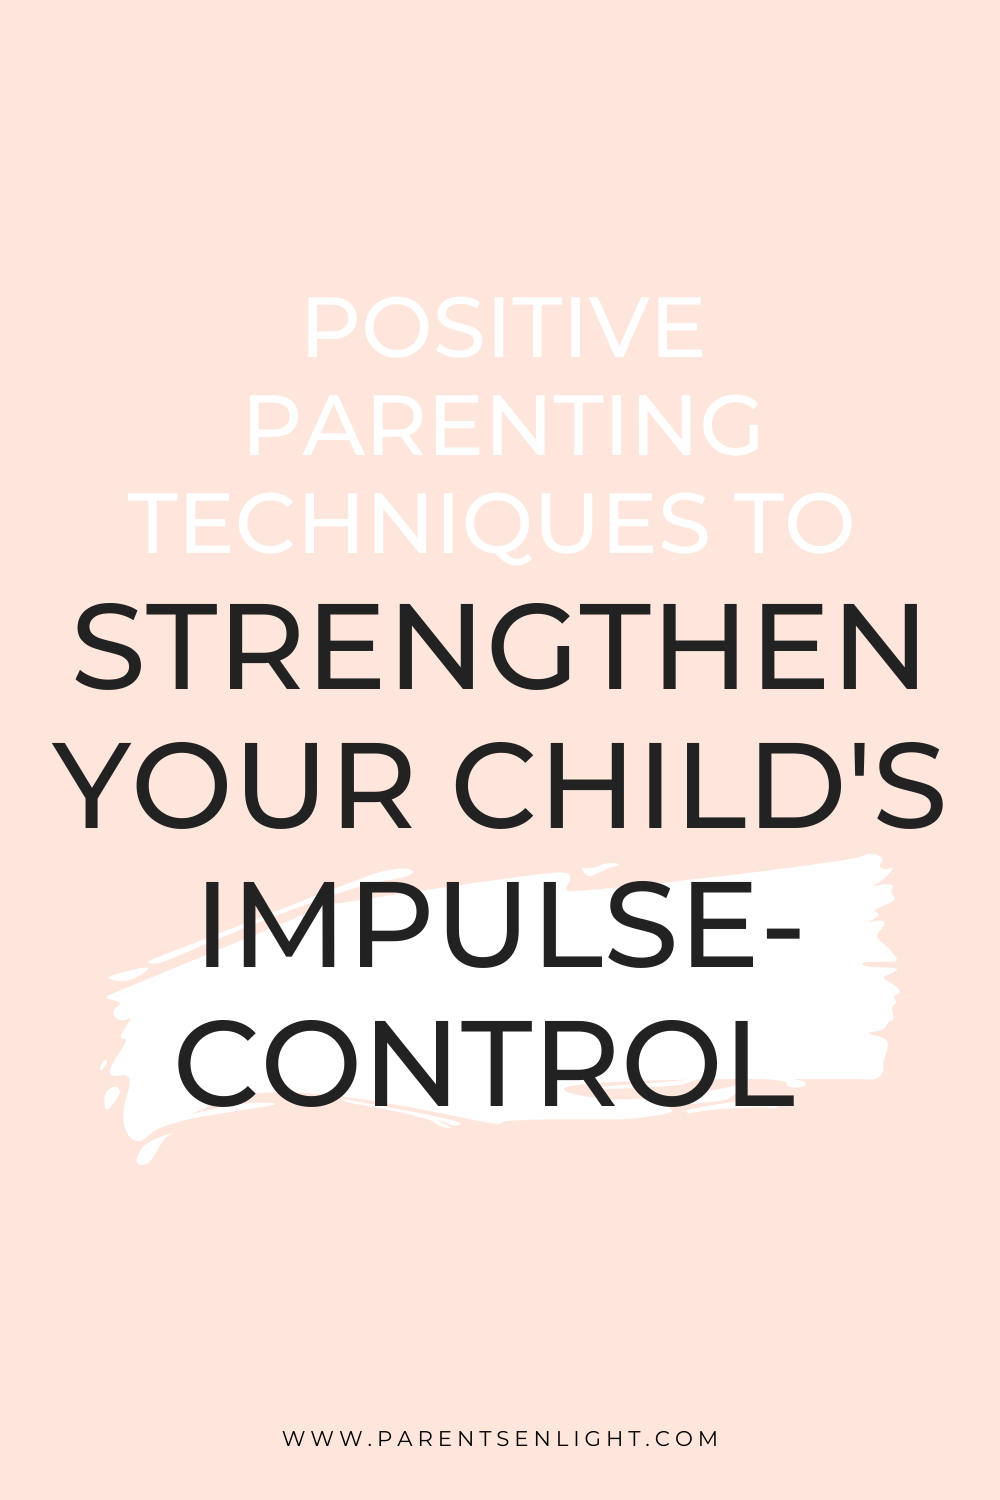 Kids of all ages struggle with the lack of impulse control. They hit, they fight, they're fast to react, they're impatient... I'm sure you know exactly what I'm talking about :) This is how you can help your child strengthen his impulse control using positive parenting techniques #impulsecontrol #lackofimpulsecontrol #positiveparenting #positiveparentingtechniques #attachmentparenting #mindfulness #mindfulparenting #parenting #raisinghappykids #raisingconfidentkids #positivediscipline #positiveparentingtips #parentingtips #reconnectwithkids #bondingwithdaughter #mothersonbonding #bondingwithfamily #familylife #raisinghappykids